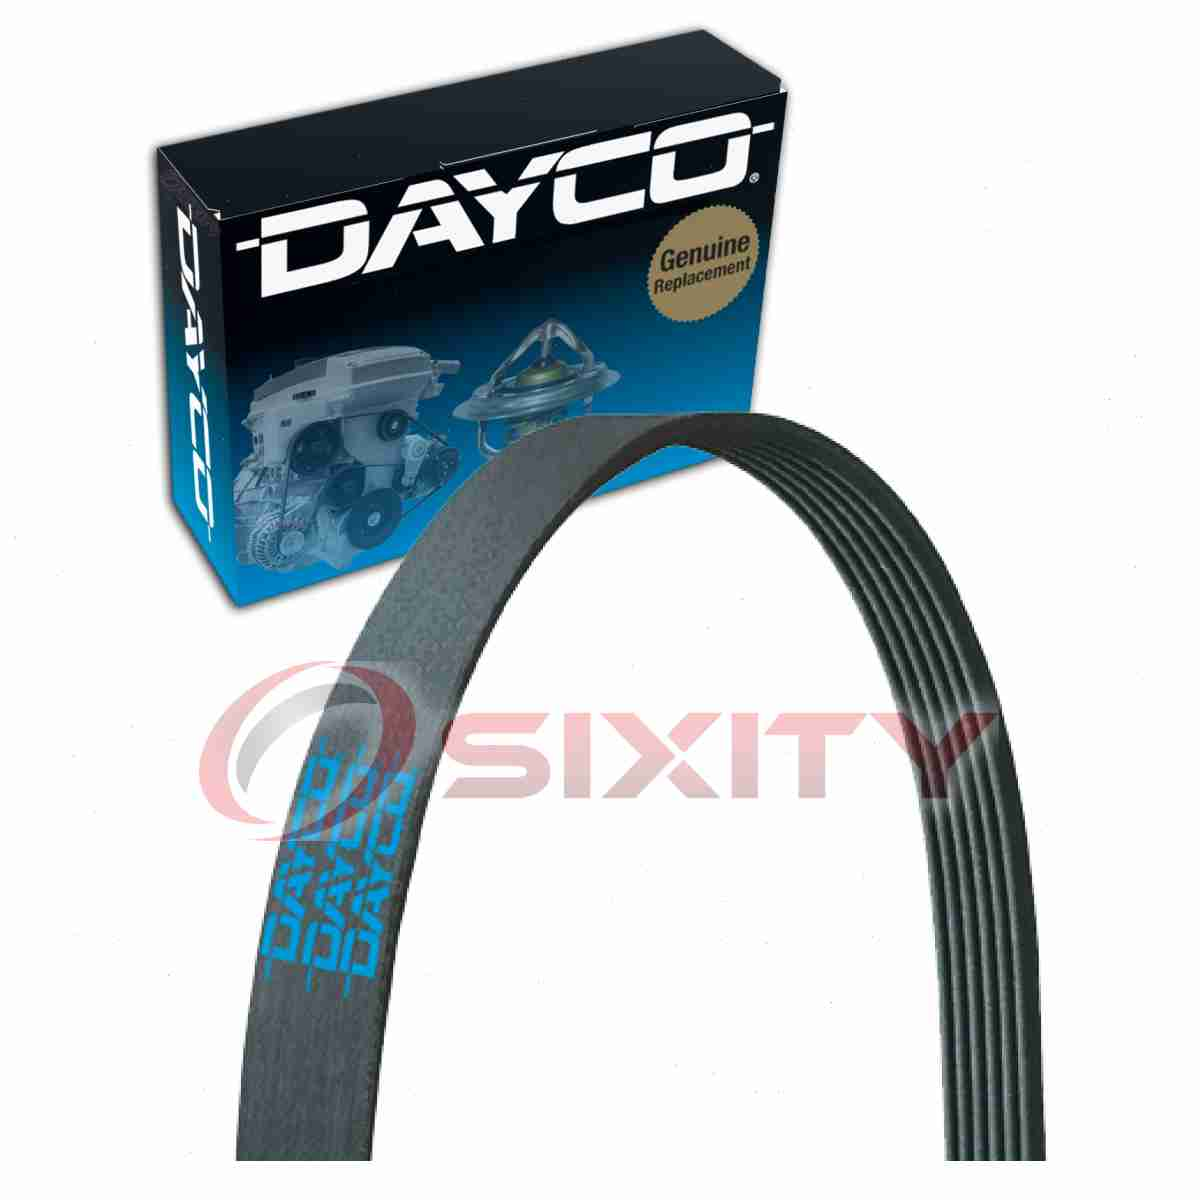 Dayco Main Drive Serpentine Belt for 2003-2004 Ford Expedition 4.6L 5.4L V8 xz